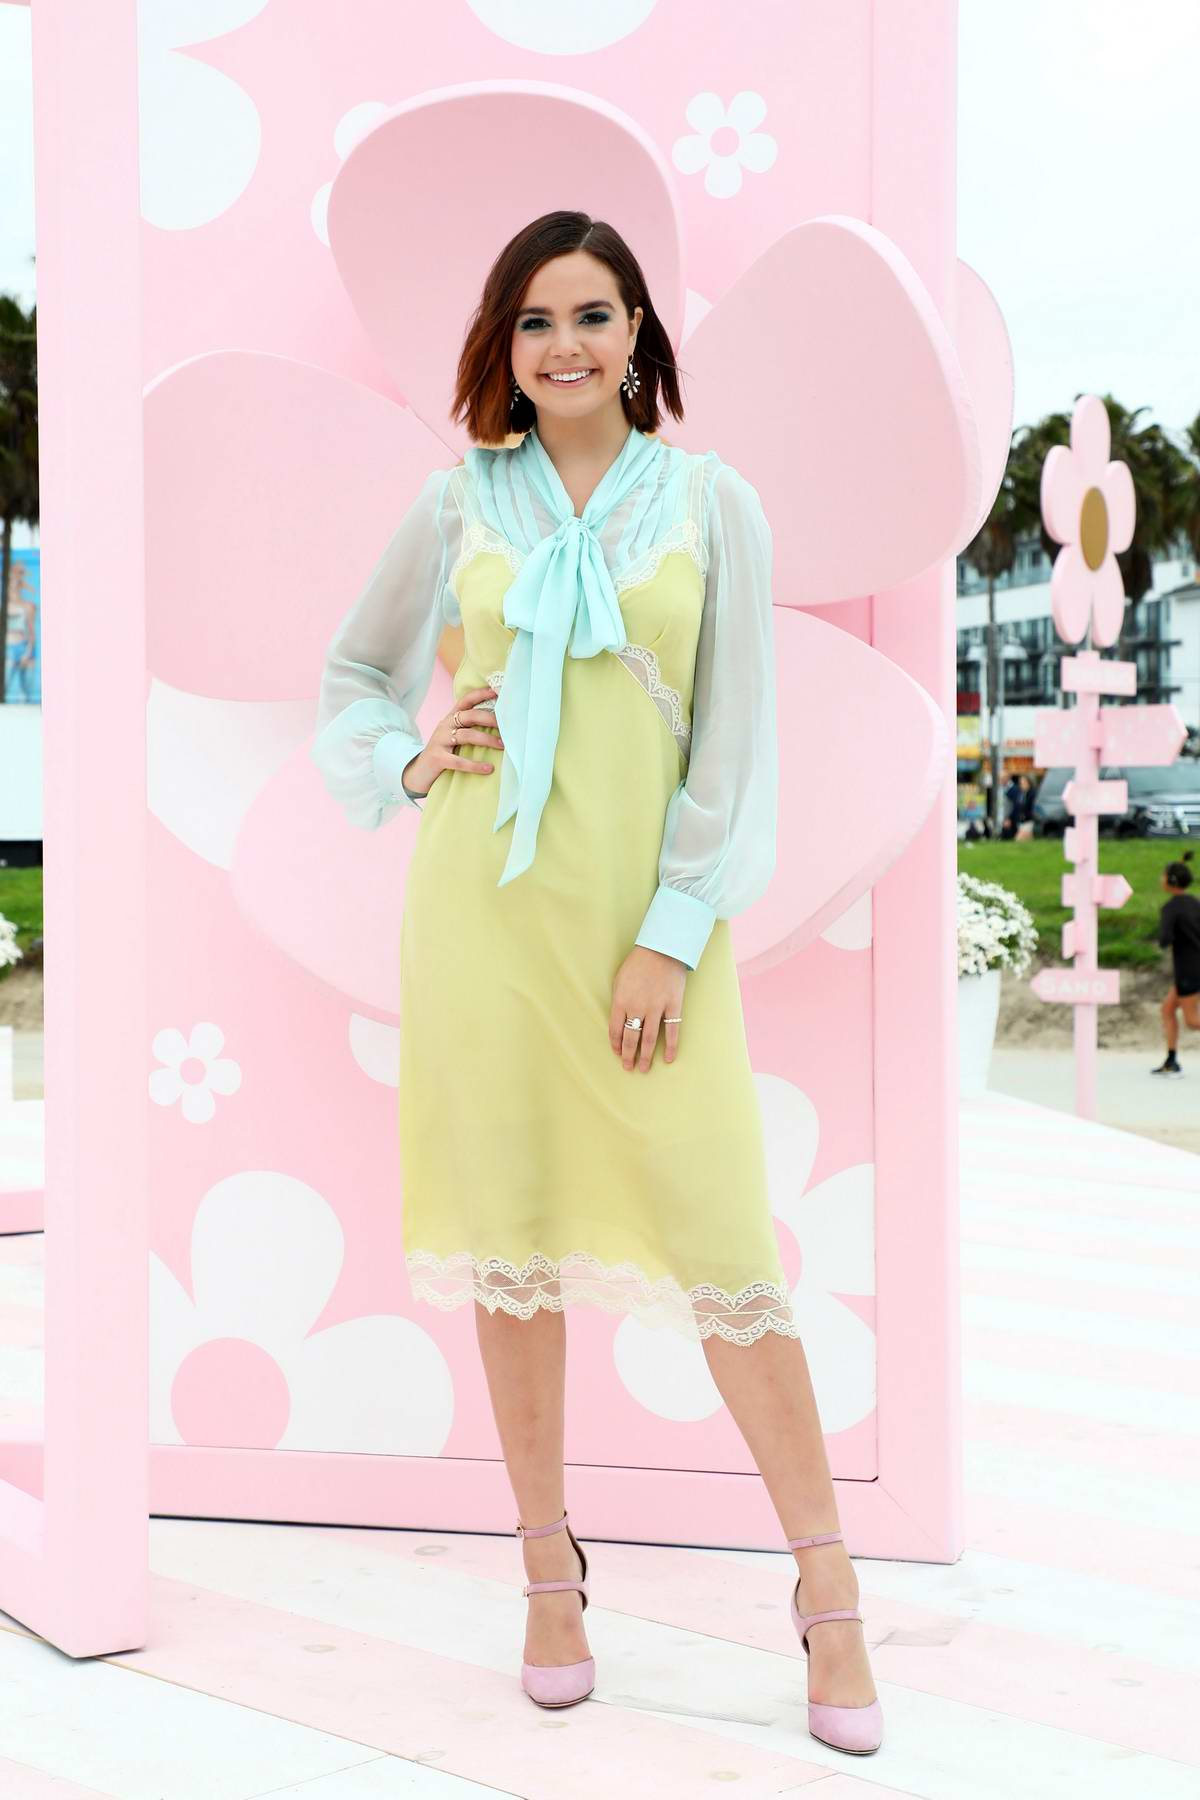 Bailee Madison attends Marc Jacobs Daisy Love 'So Sweet' Fragrance Popup Event in Los Angeles